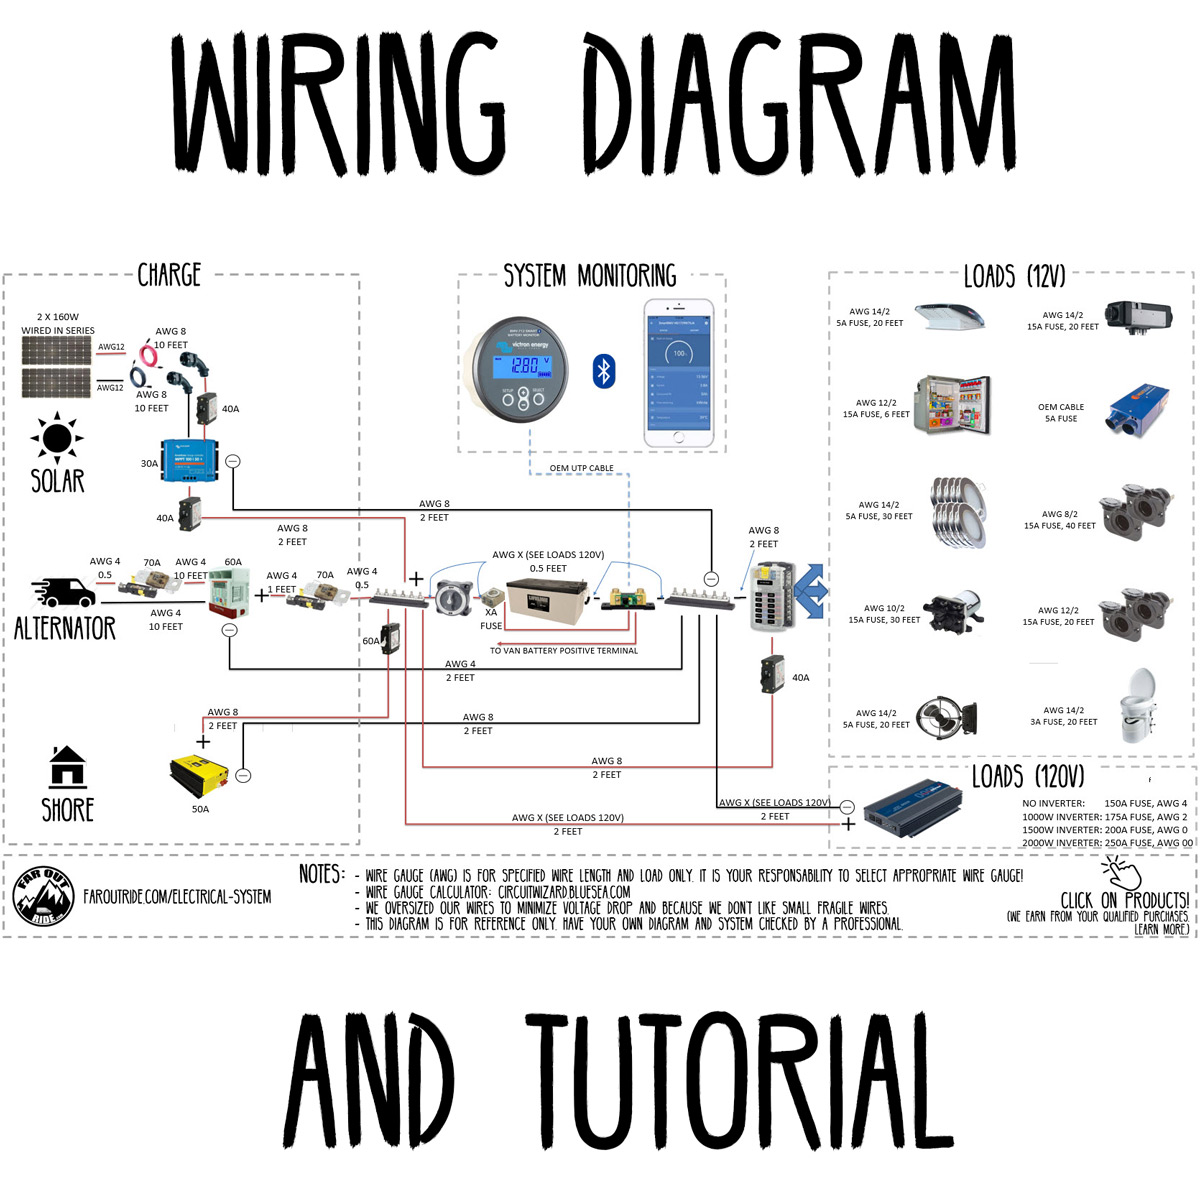 Wiring diagram tutorial faroutride faroutride wiring diagram product heading square asfbconference2016 Gallery